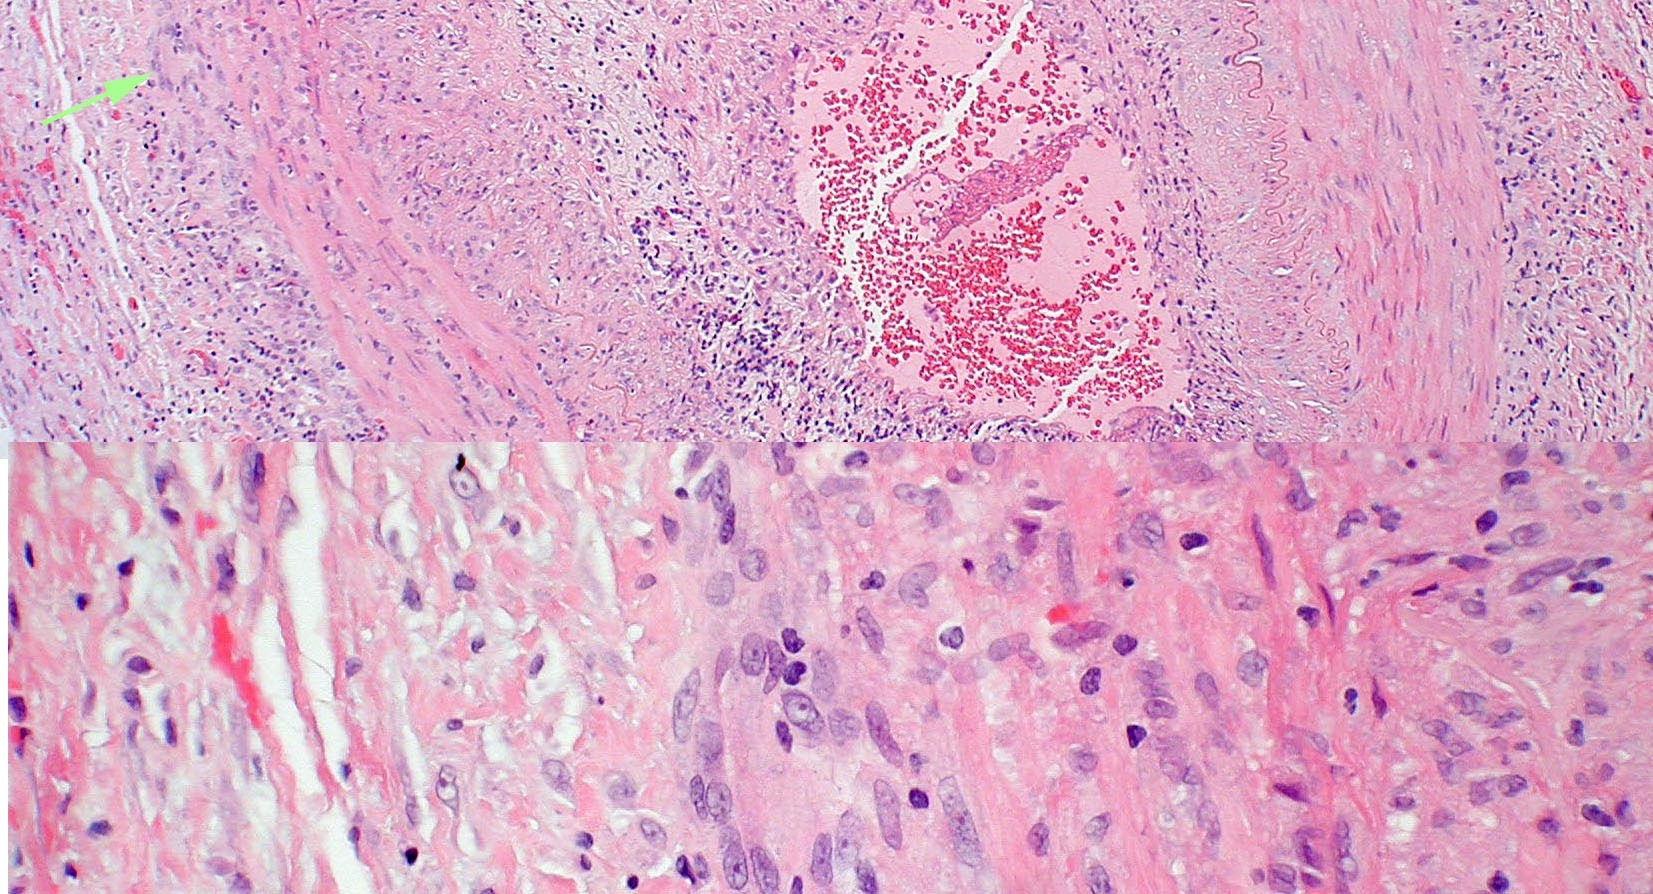 Pathologic specimen from a patient with biopsy proven giant cell arteritis.  Multi-nucleated giant cells (arrow) are present in the vessel wall.  Photograph courtesy of Ben Glasgow, M.D.